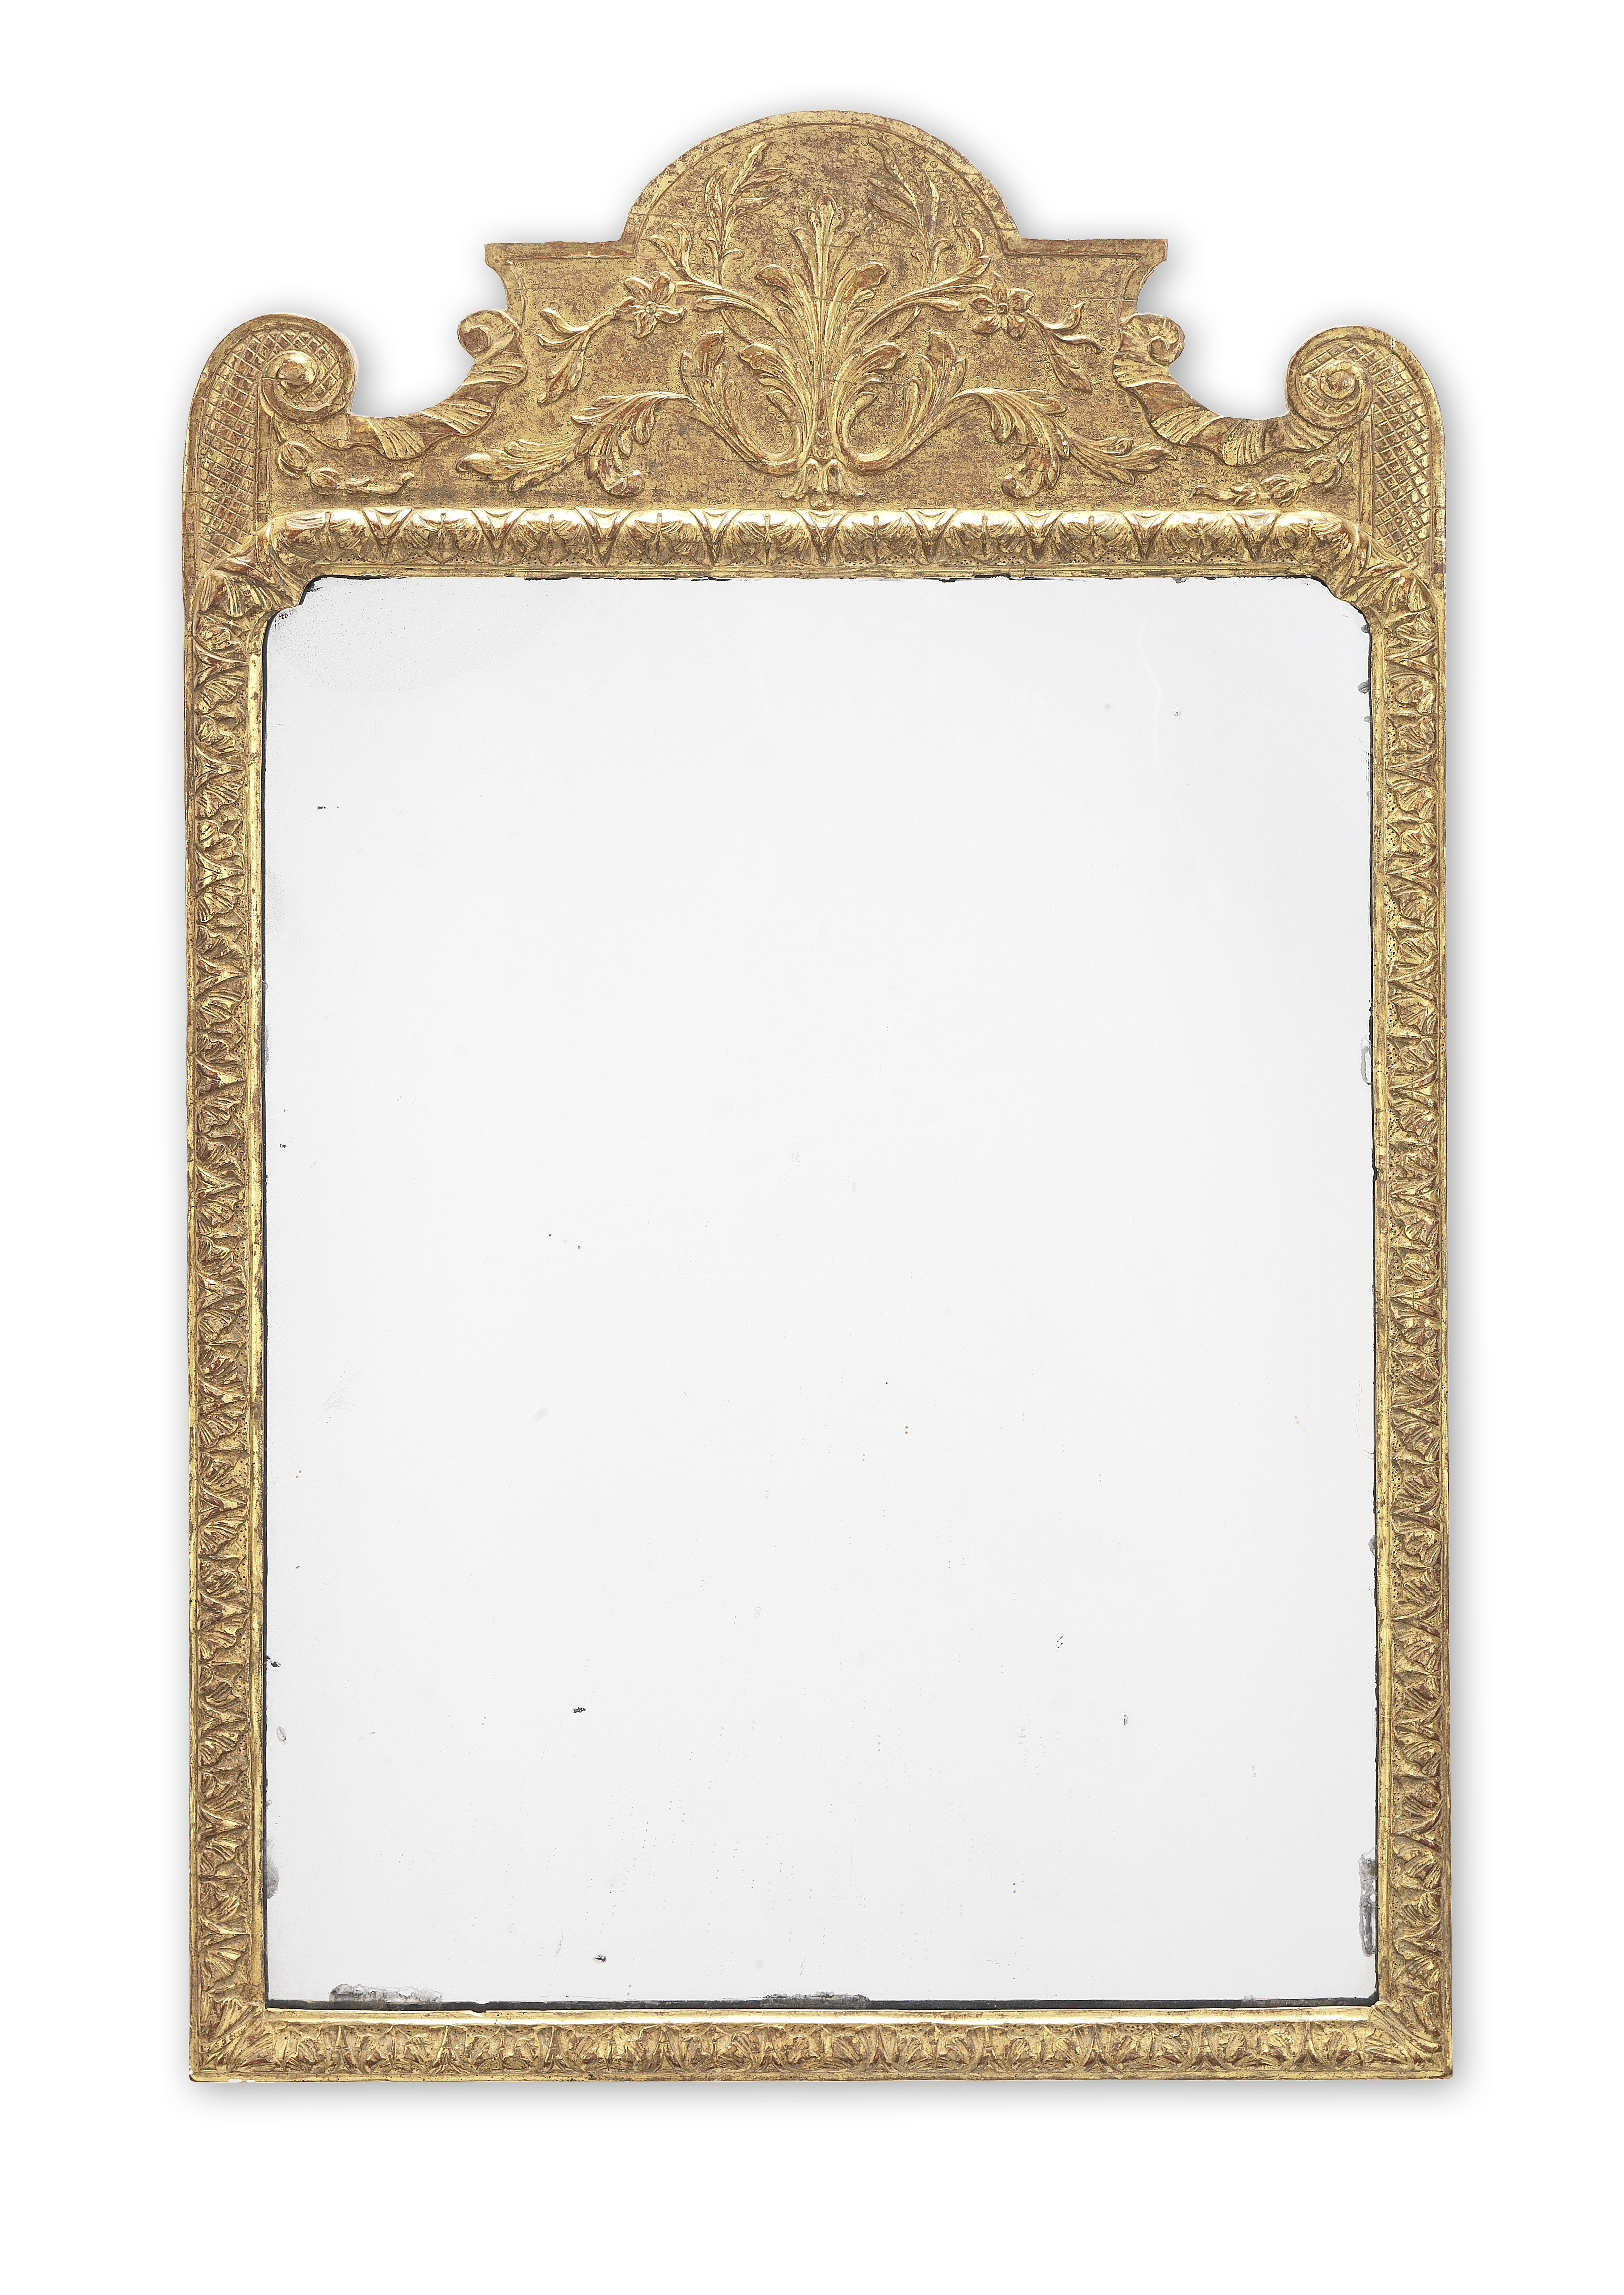 A George I gilt gesso mirror of small proportions